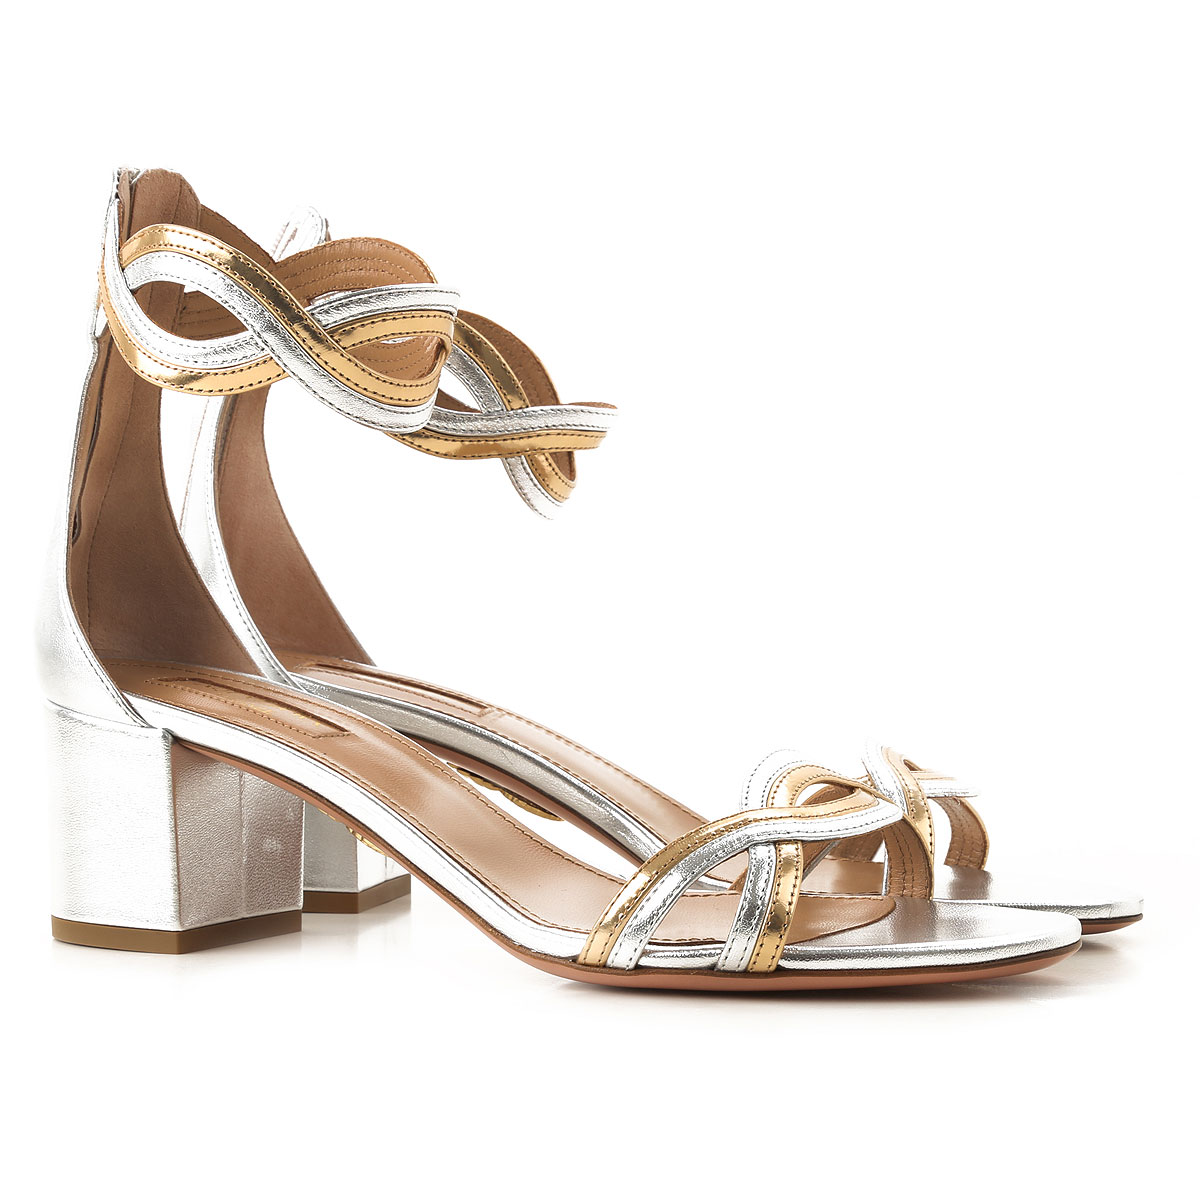 Aquazzura Sandals for Women On Sale in Outlet, Silver, Metallic Leather, 2019, 6 9